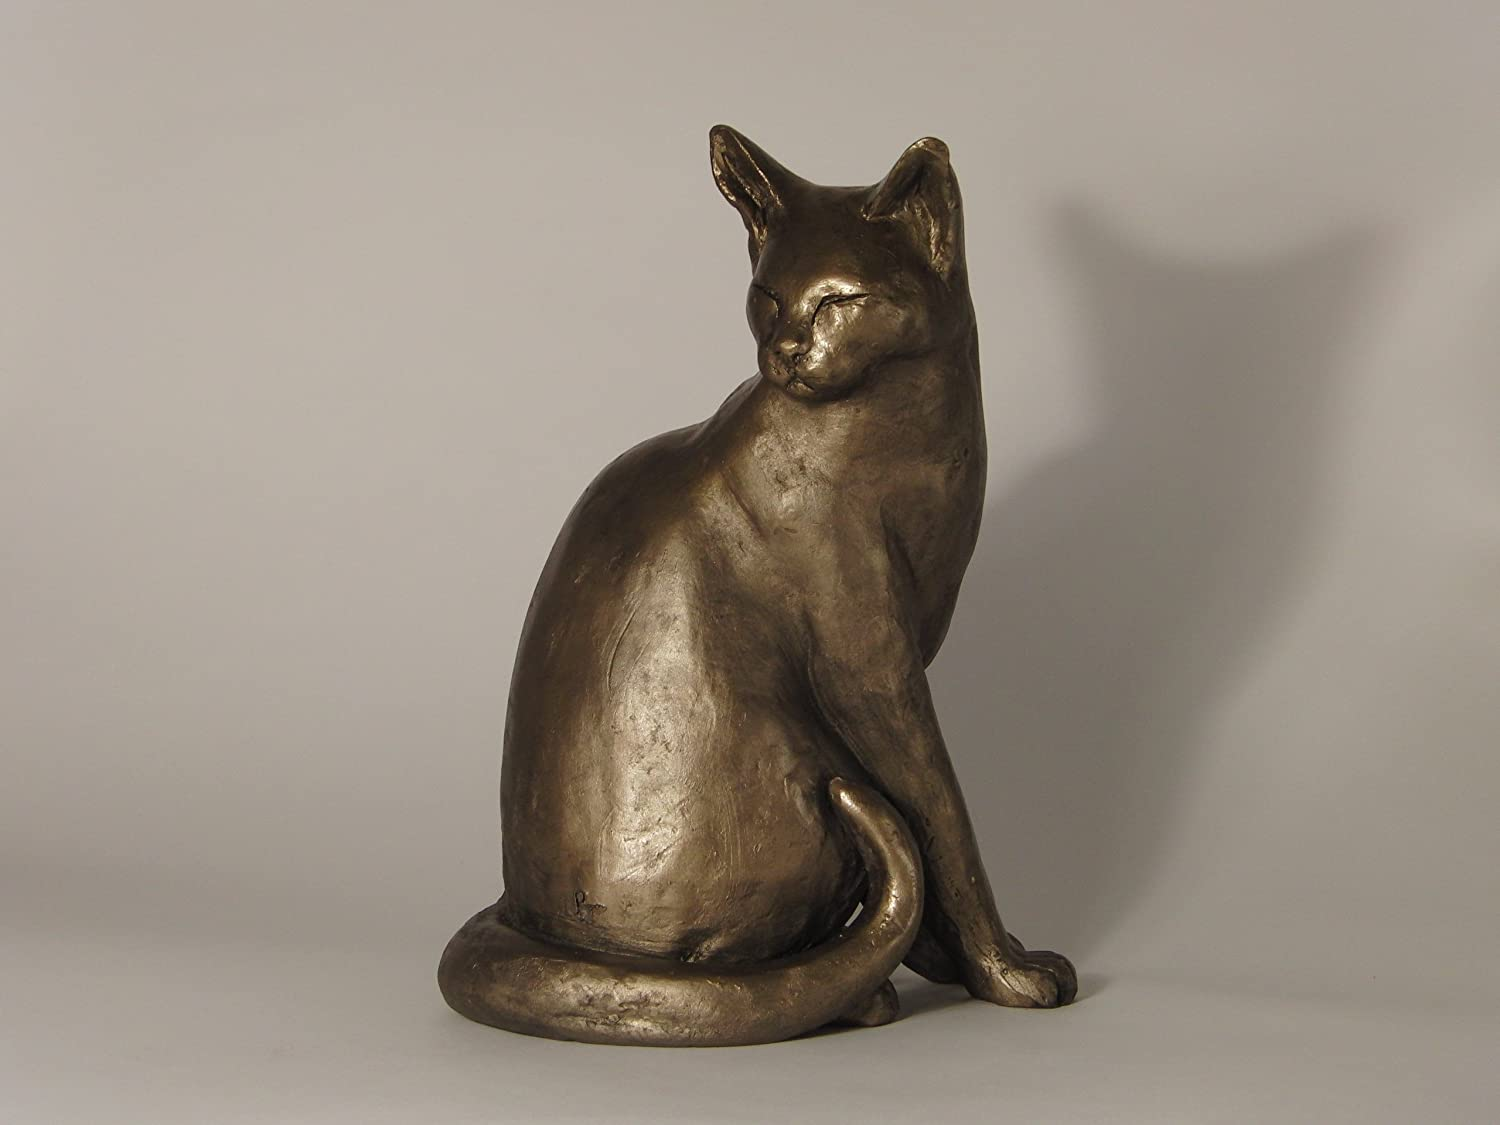 Stretching Cat Sculpture Bronze Resin Statue Art Collectibles Home Office Decoration Gifts for Cat Lover Tooarts